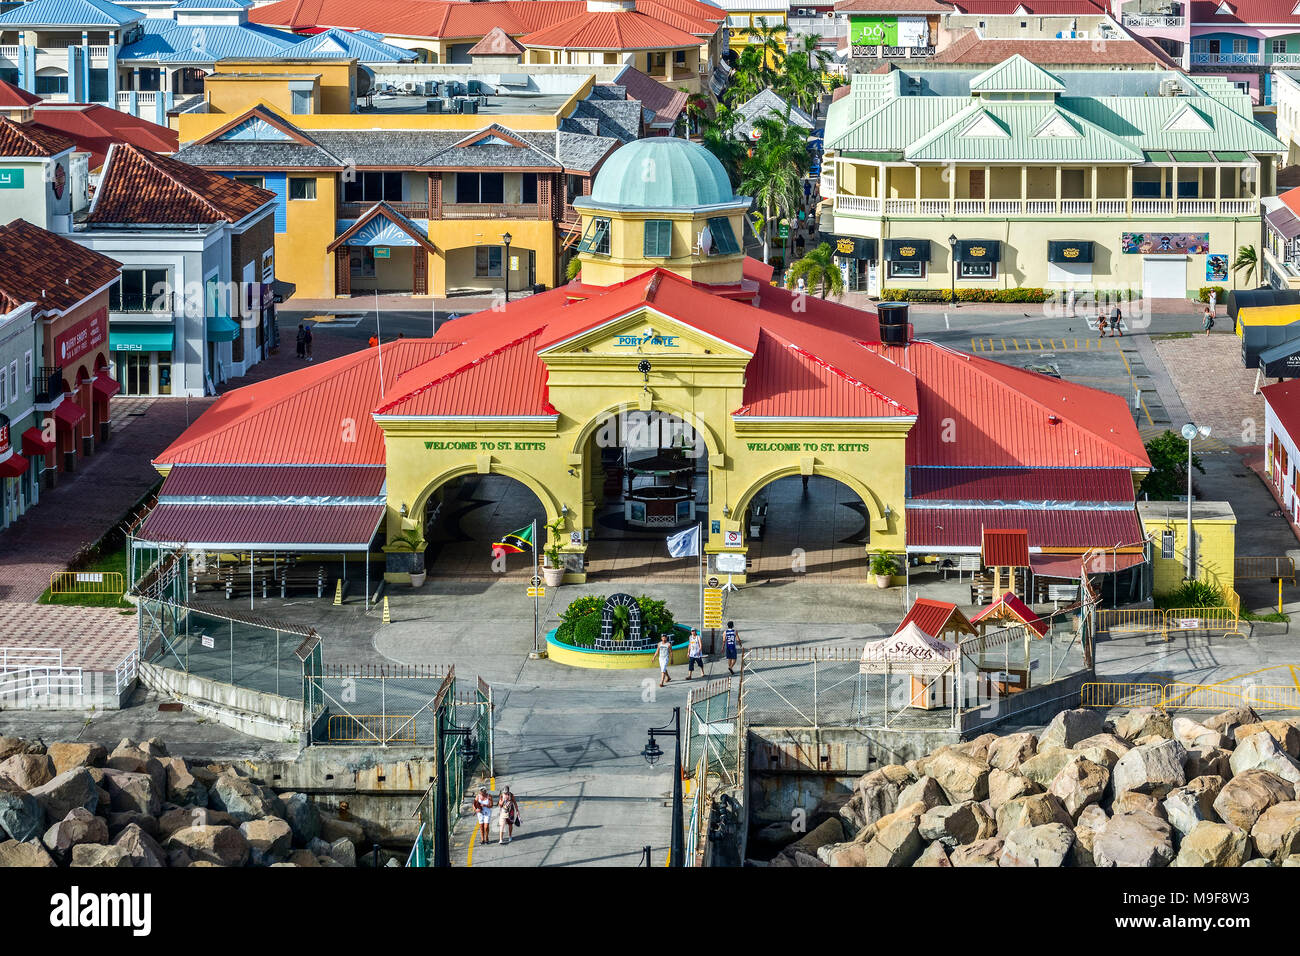 The Port Of Zante Basseterre,  St. Kitts, West Indies - Stock Image